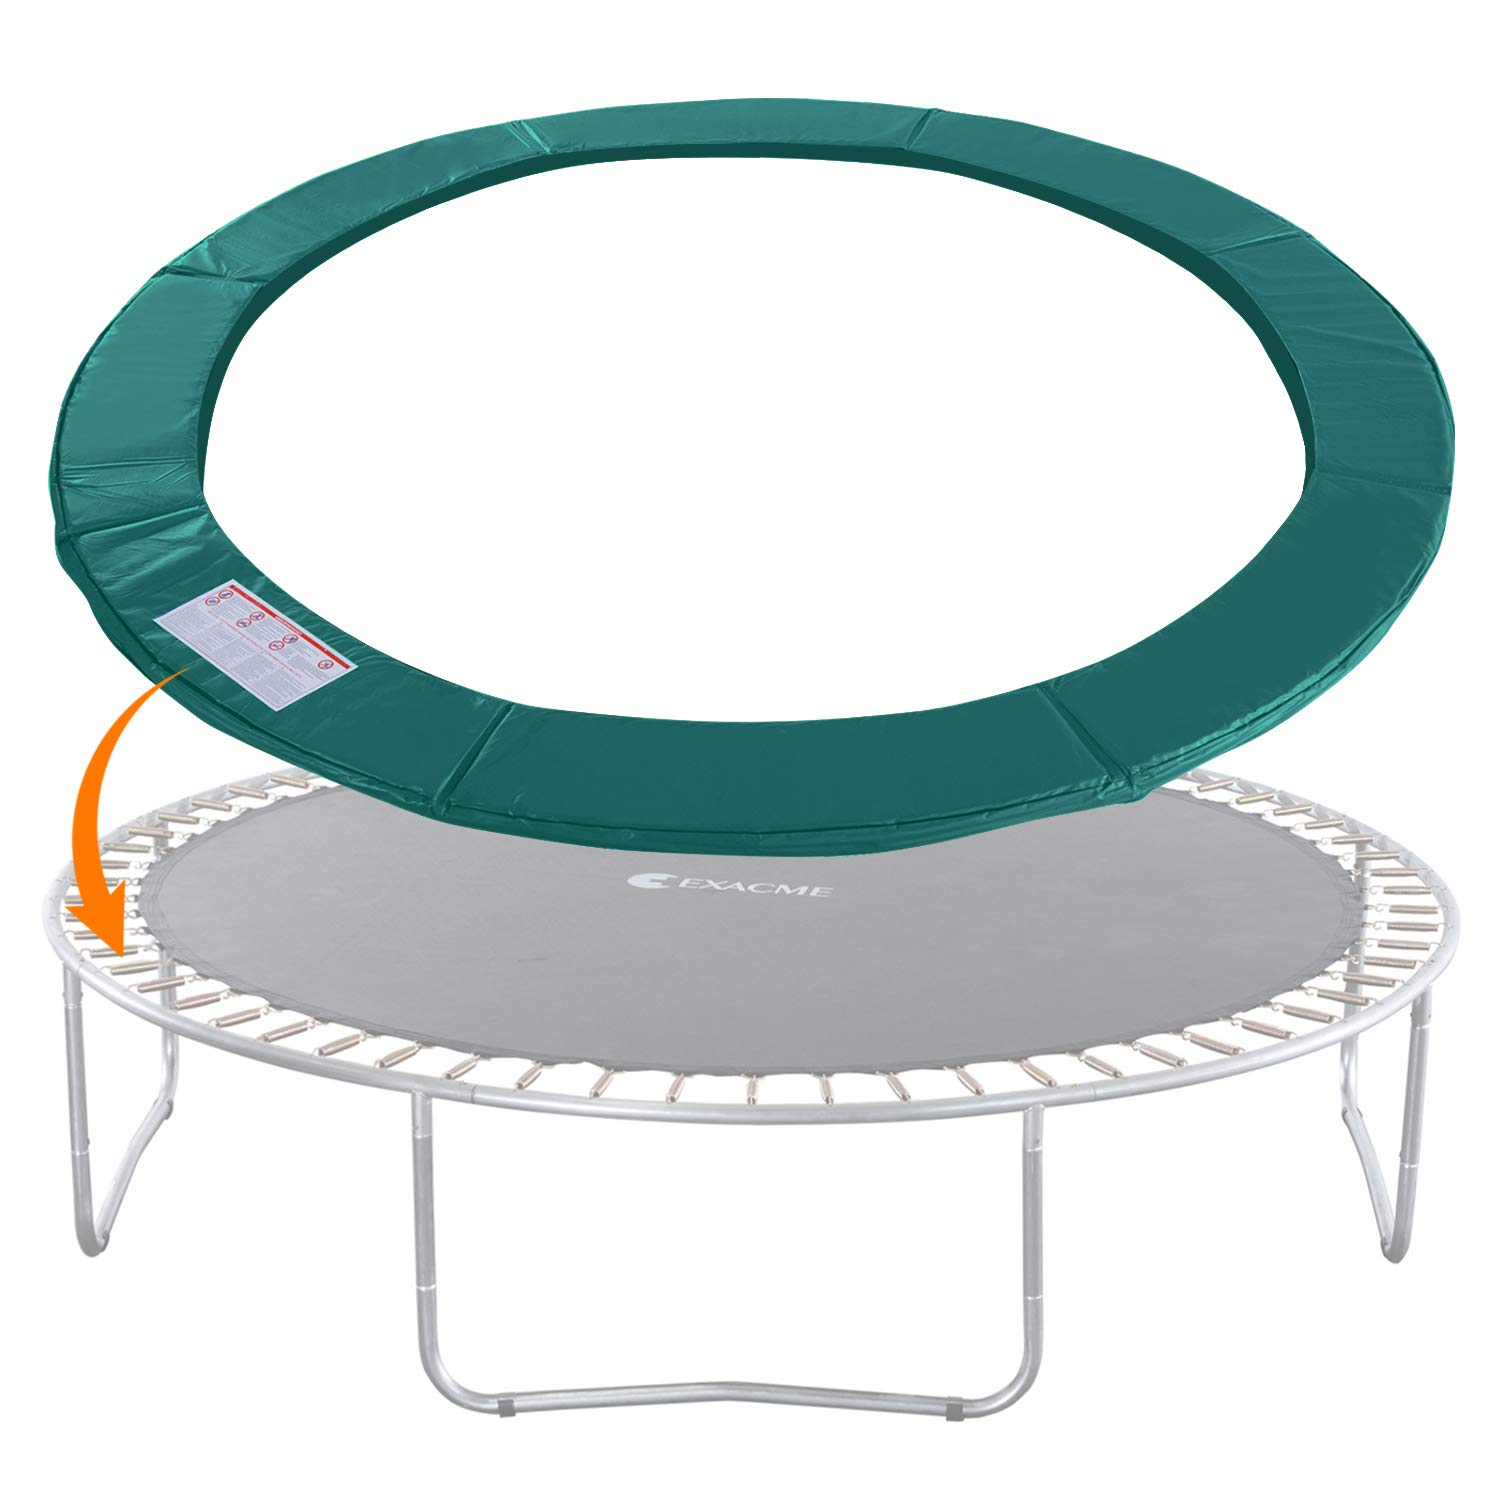 Exacme Trampoline Replacement Safety Pad Round Spring Cover, No Slots (Green, 10 Foot) by Exacme